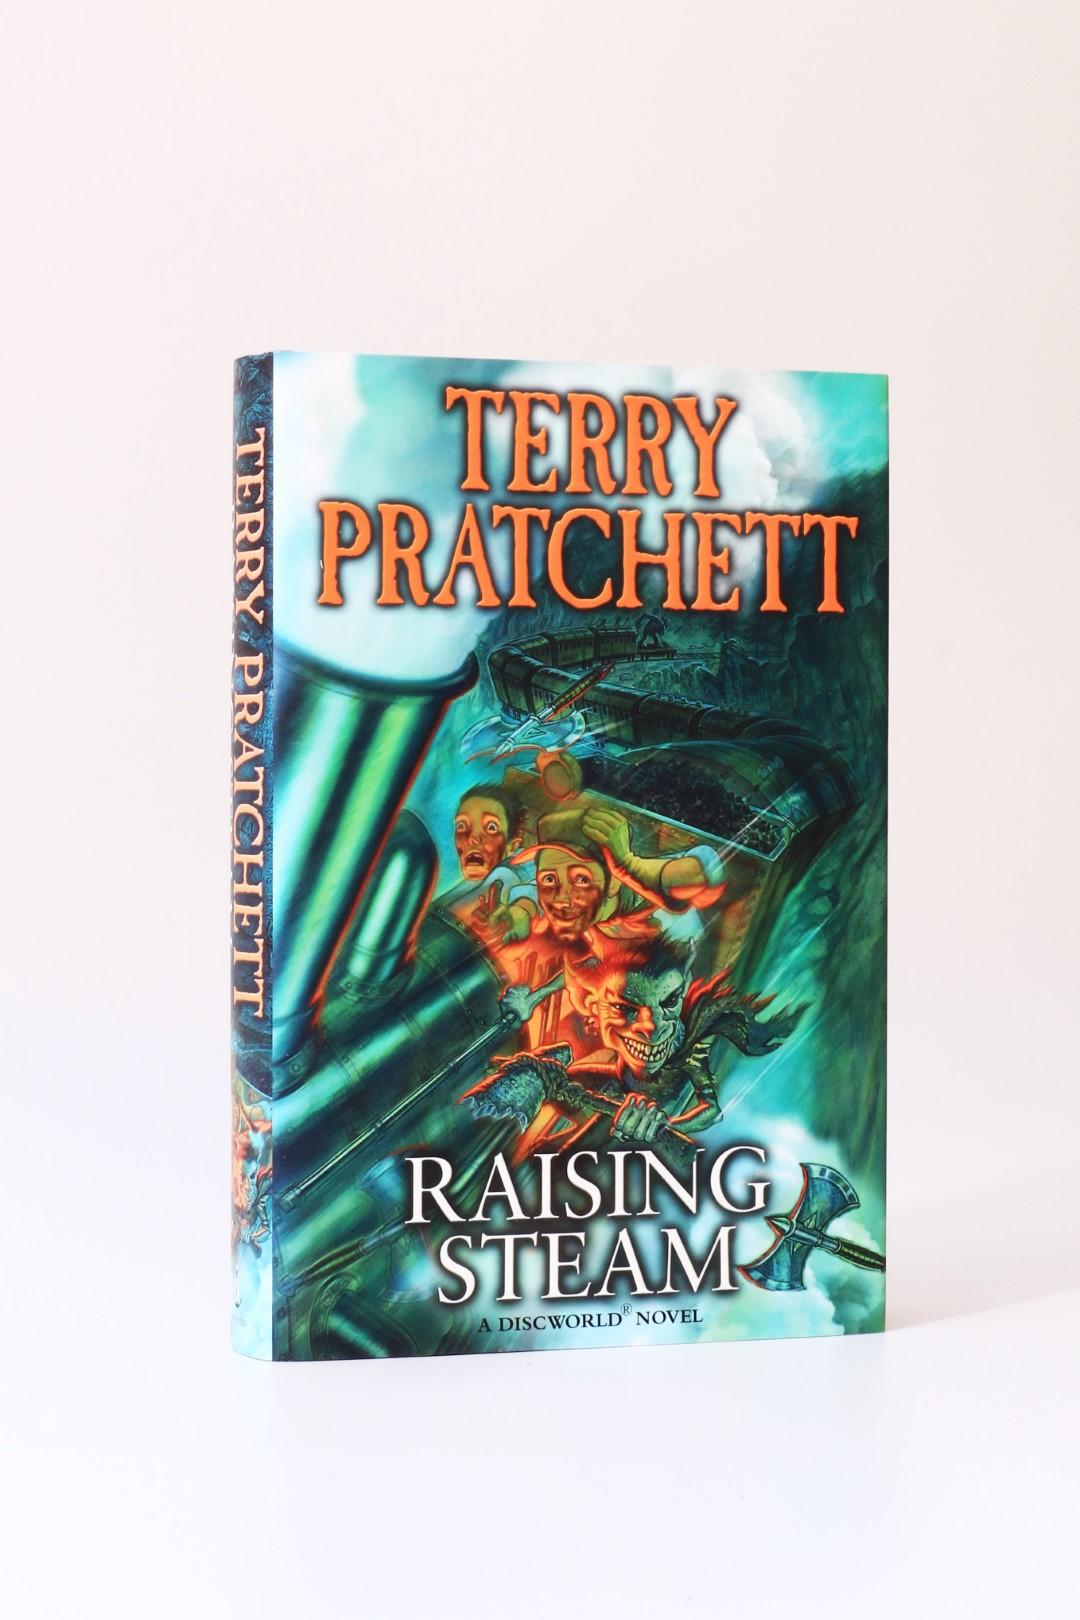 Terry Pratchett - Raising Steam - Doubleday, 2013, First Edition.